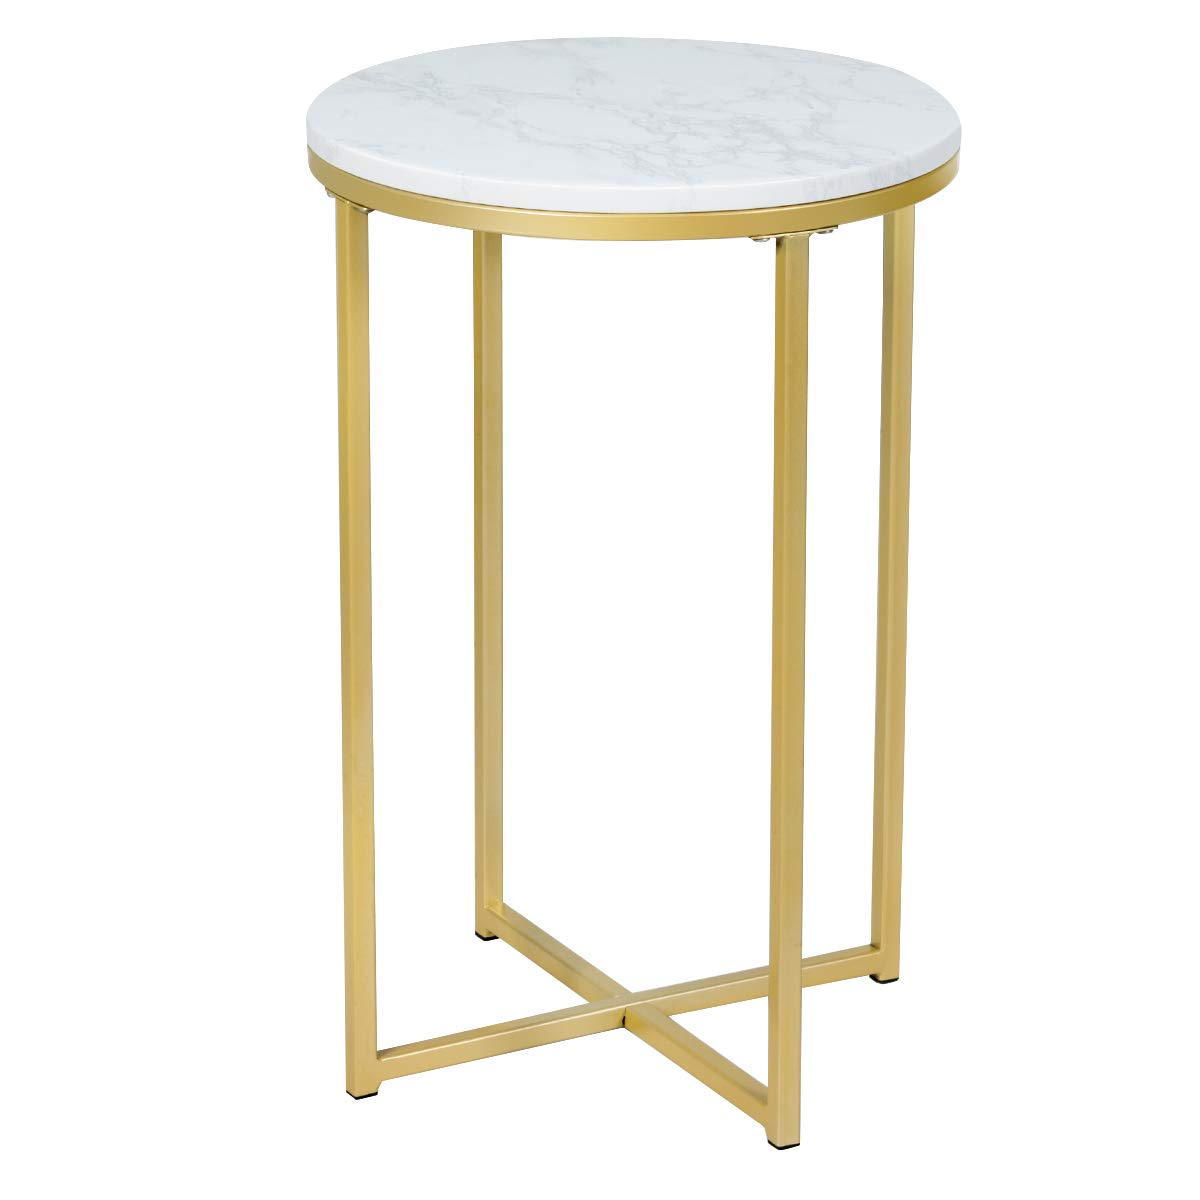 Giantex End Table X Shaped Small Round Side Table W Faux White Marble Top Sturdy Golden Metal Frame Chic Appearance For Living Room Bedroom Study Room Nightstand 1 Kitchen Dining